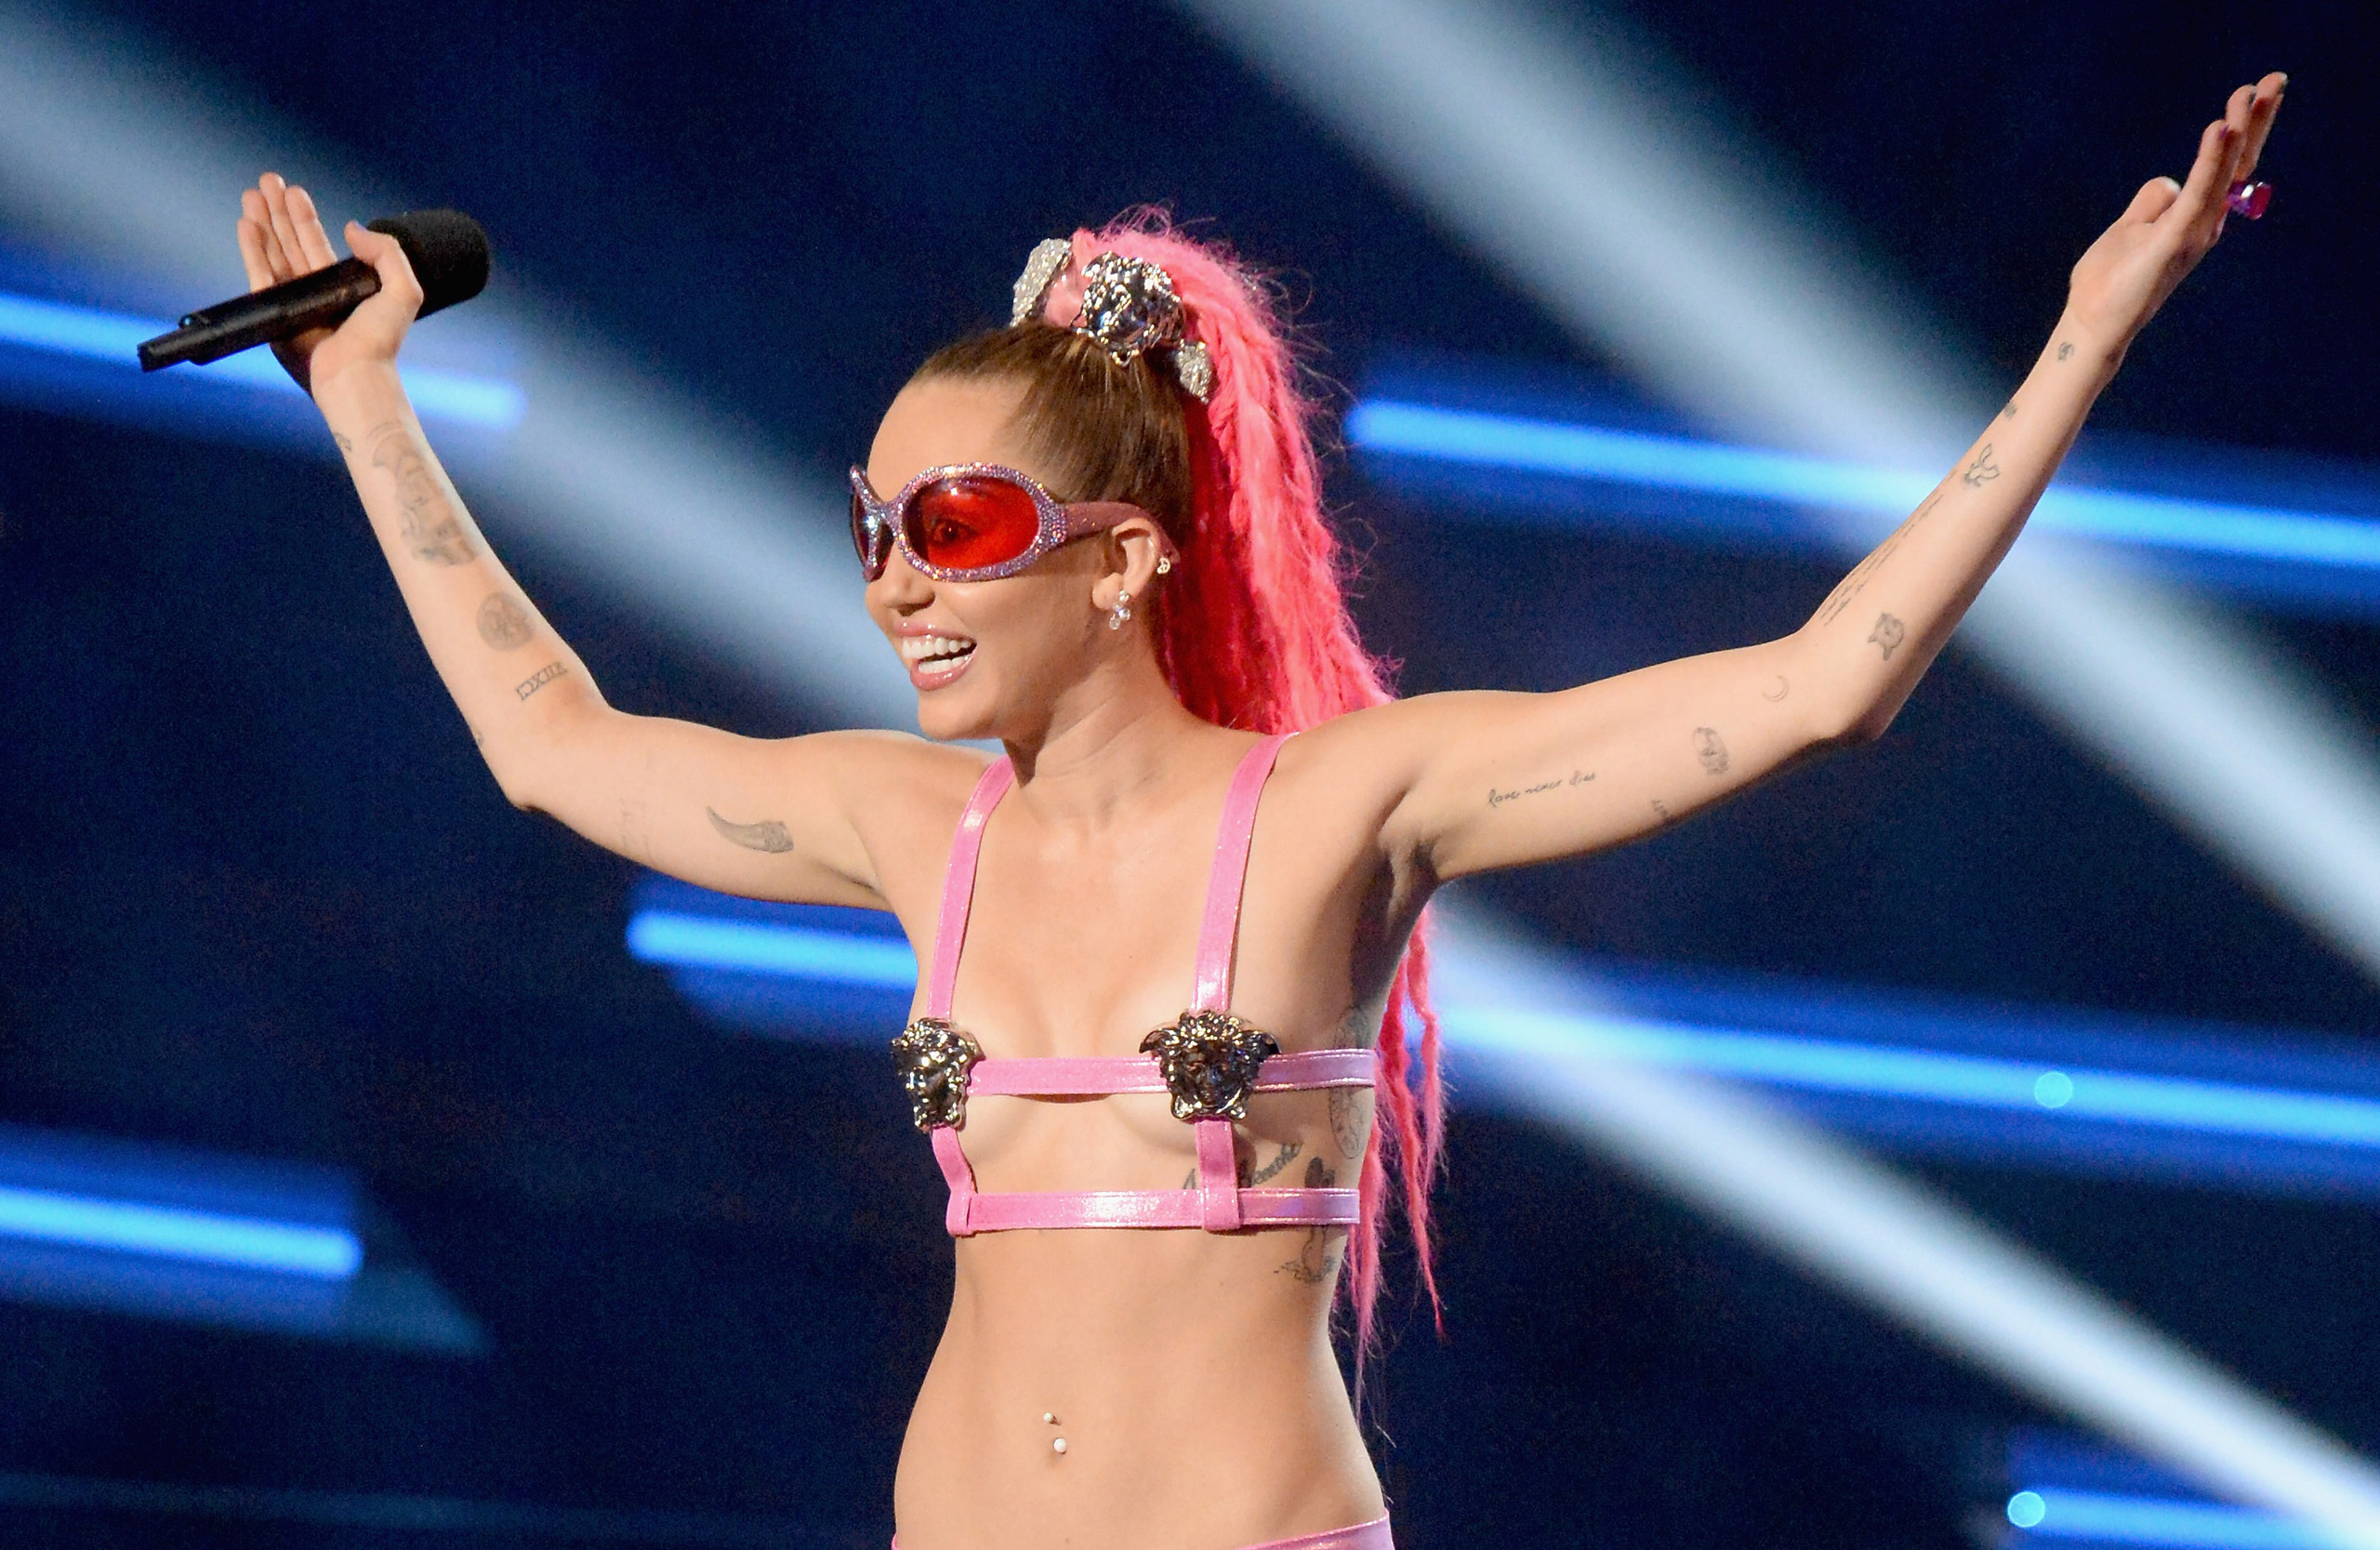 Miley Cyrus speaks onstage during the 2015 MTV Video Music Awards at Microsoft Theater in Los Angeles on Aug. 30, 2015.